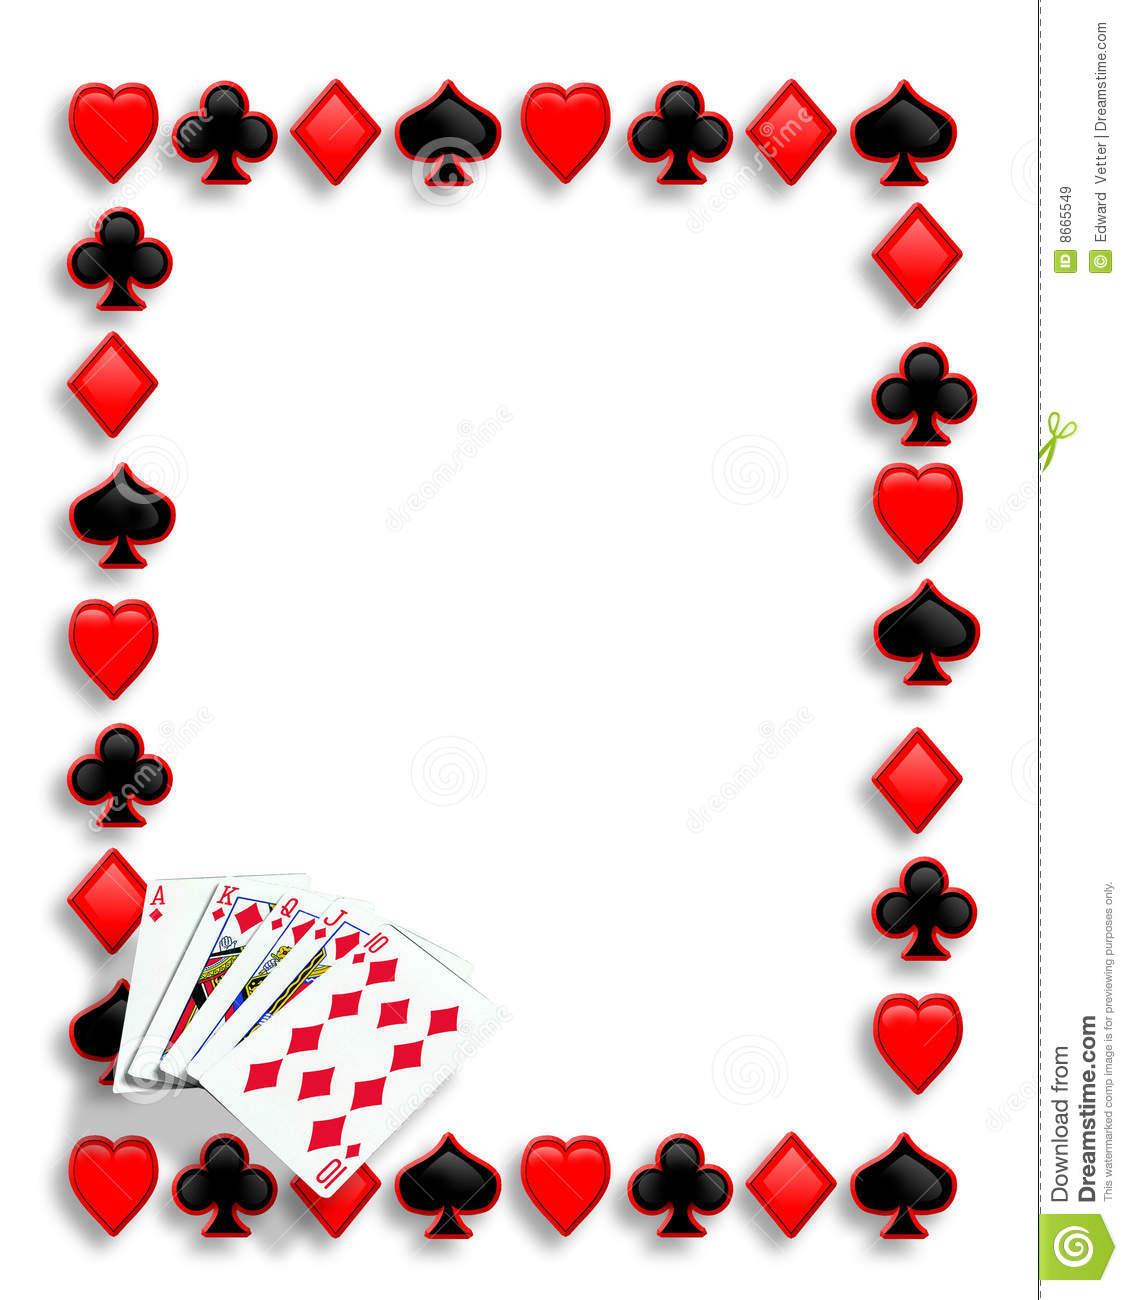 Casino Borders Playing cards borders clipart - clipart kid